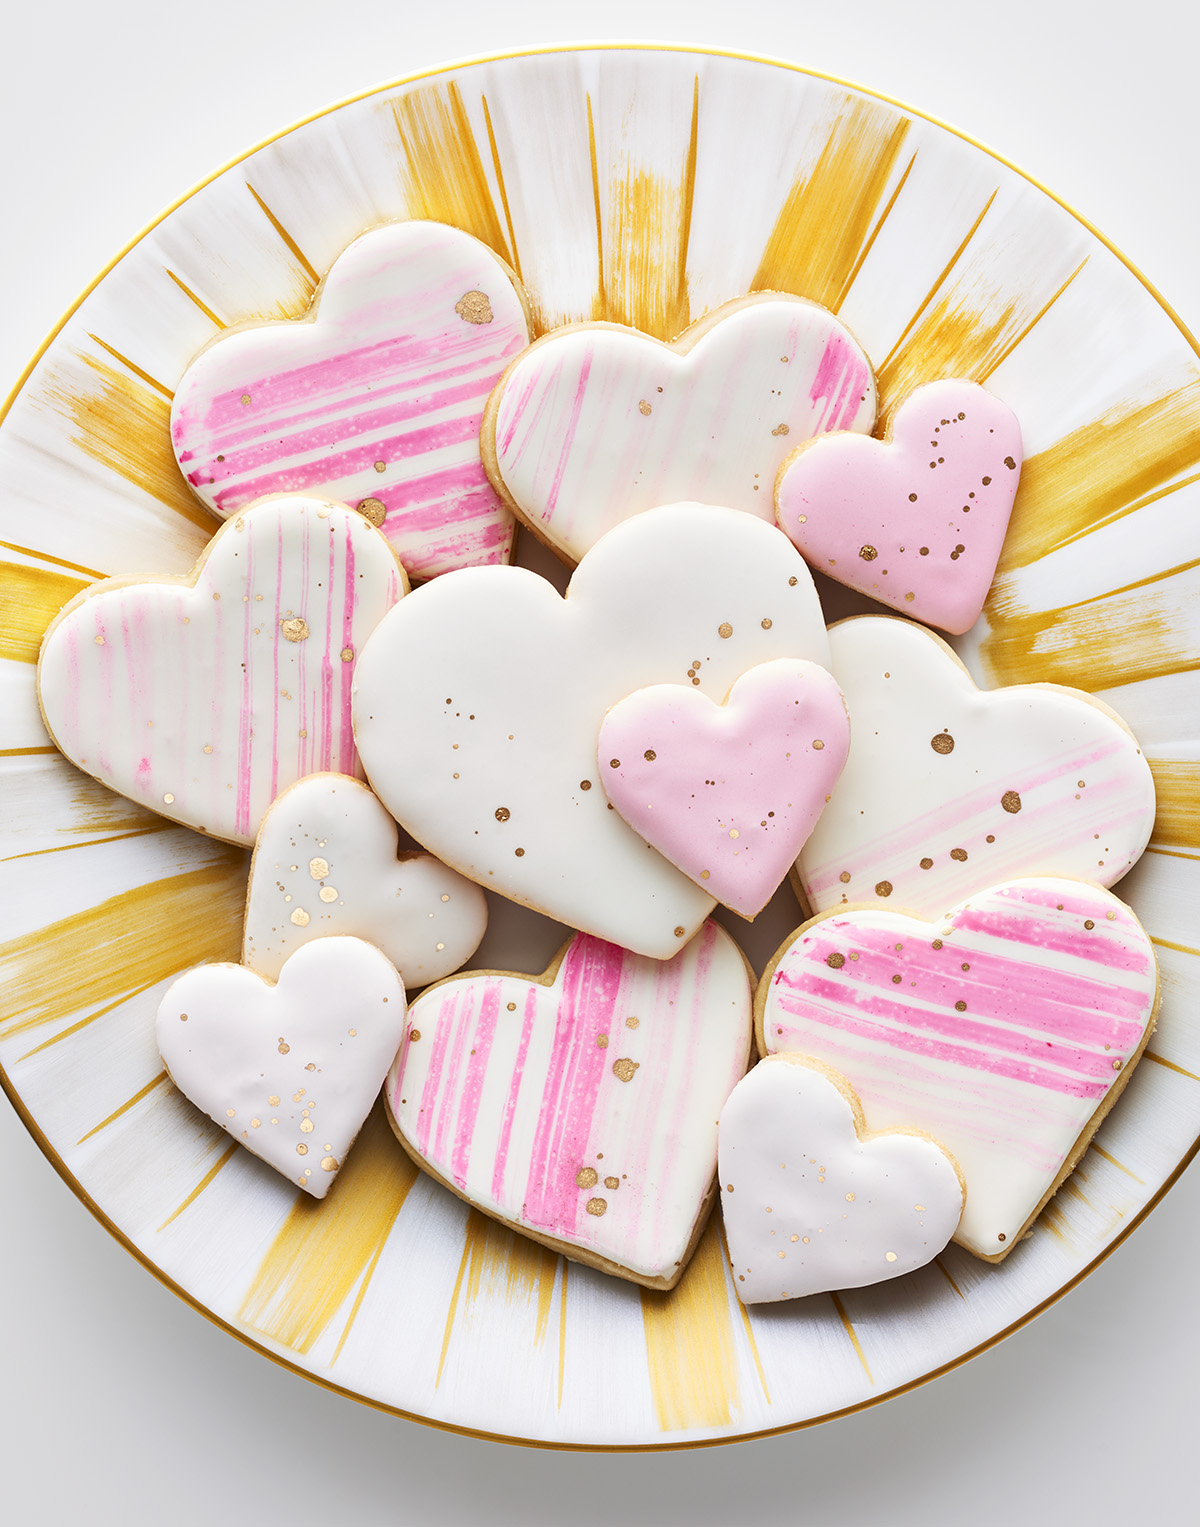 161012-Decorative-Heart-Cookies-314-CC-6212432-V10